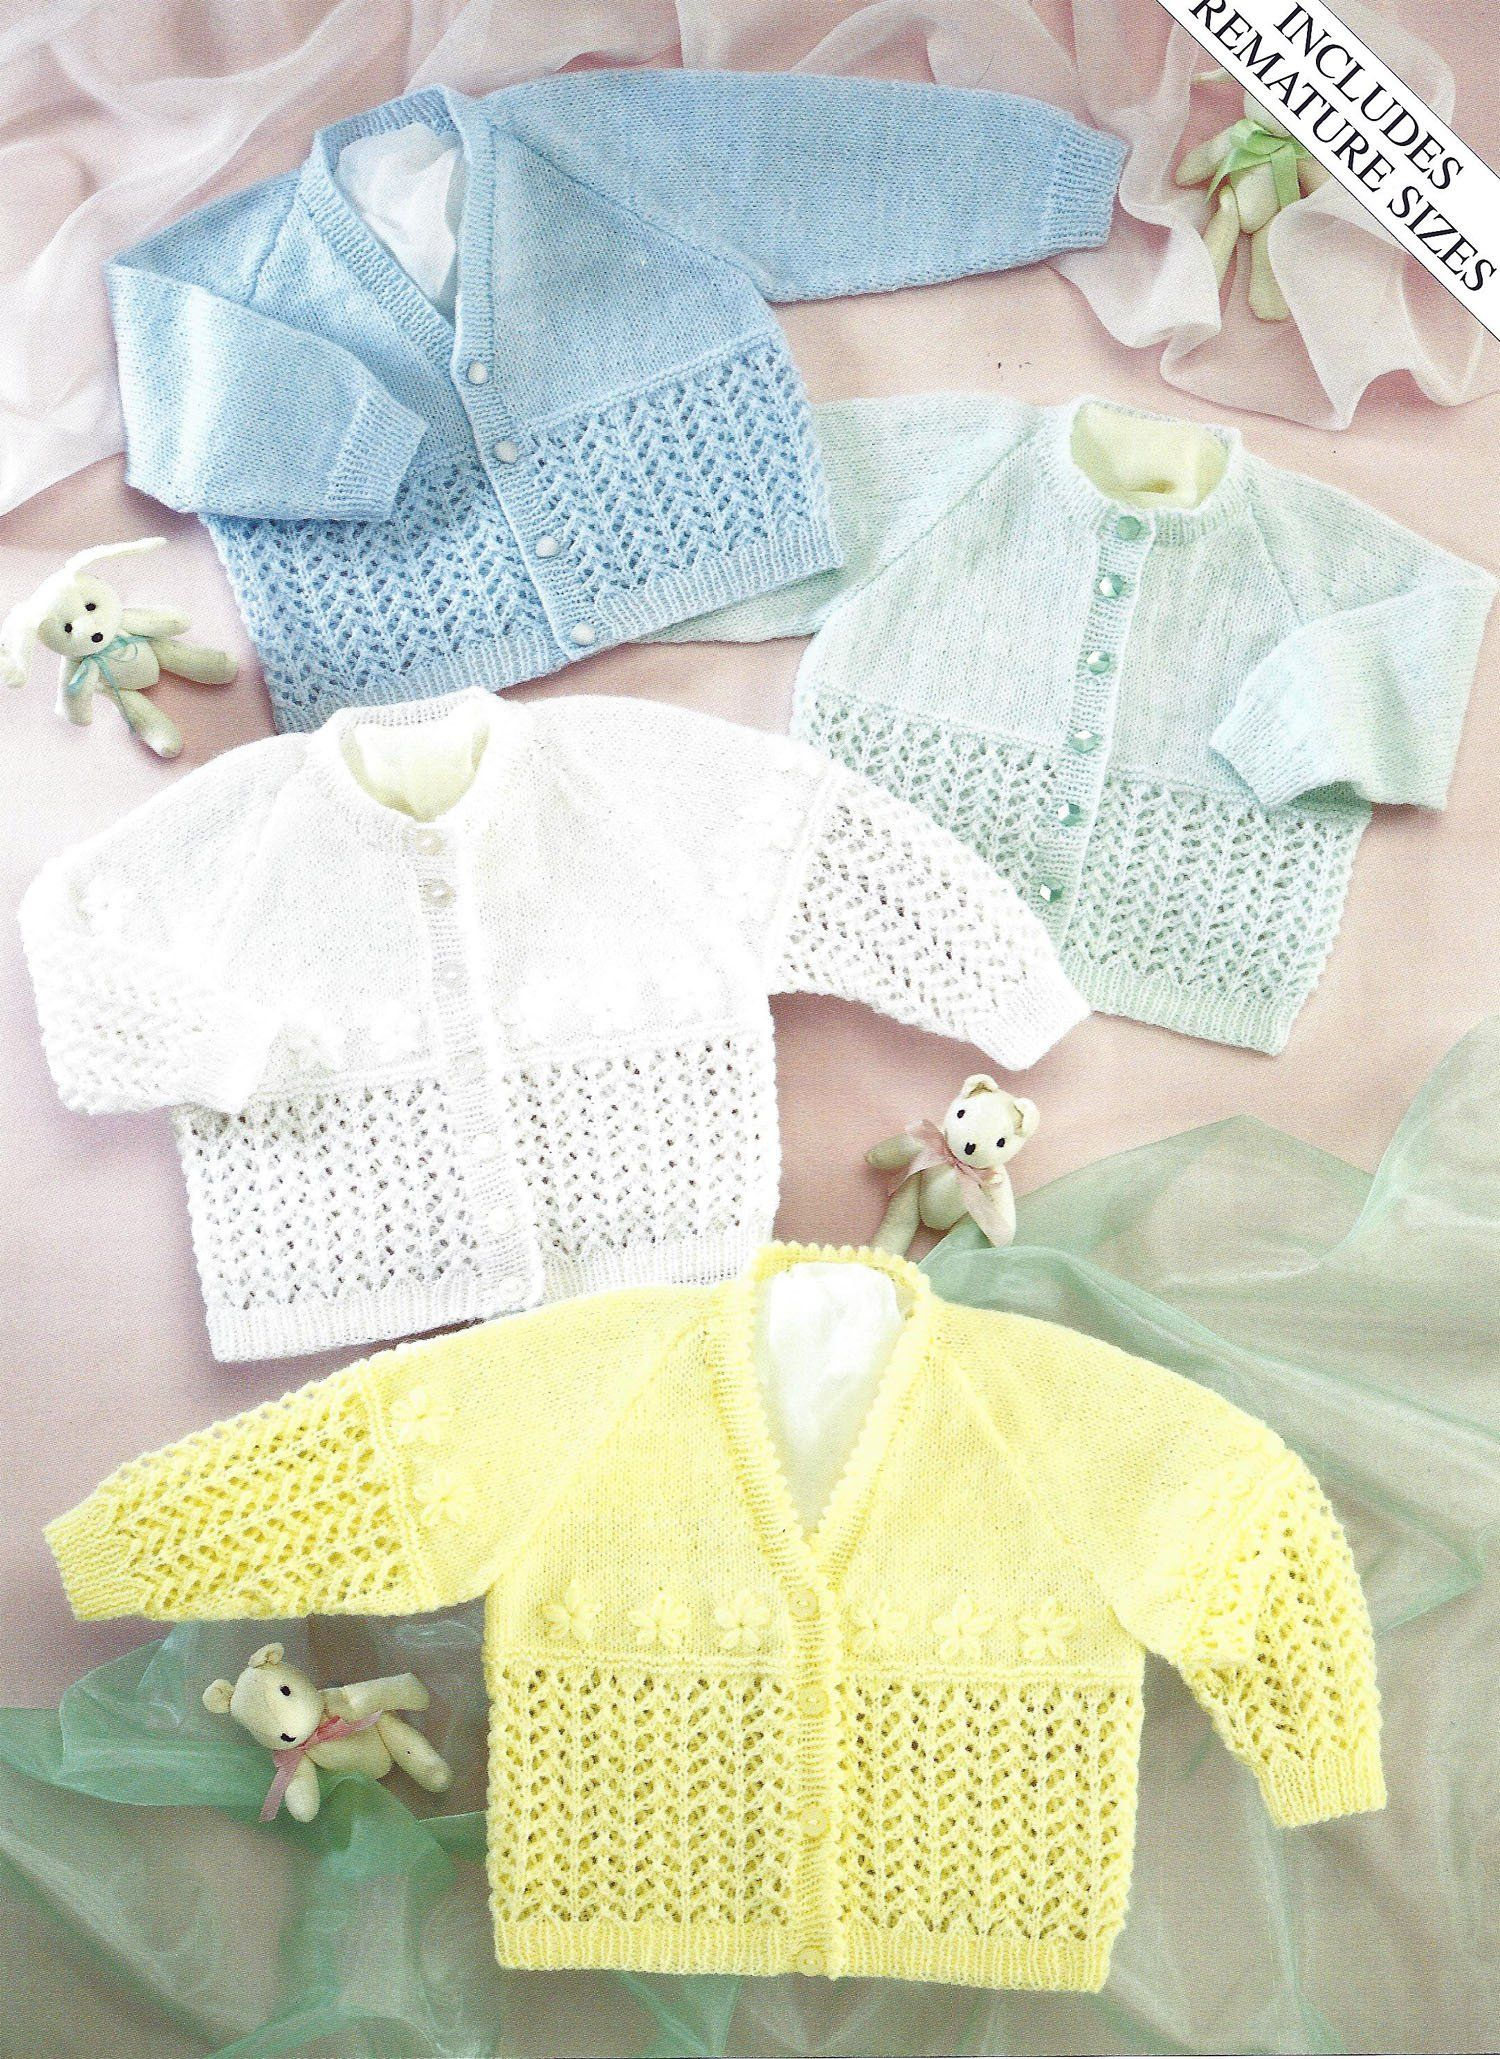 Pdf Instant Digital Download Premature Baby Doll 3 Ply Etsy Baby Cardigan Knitting Pattern Baby Knitting Patterns Cardigan Pattern